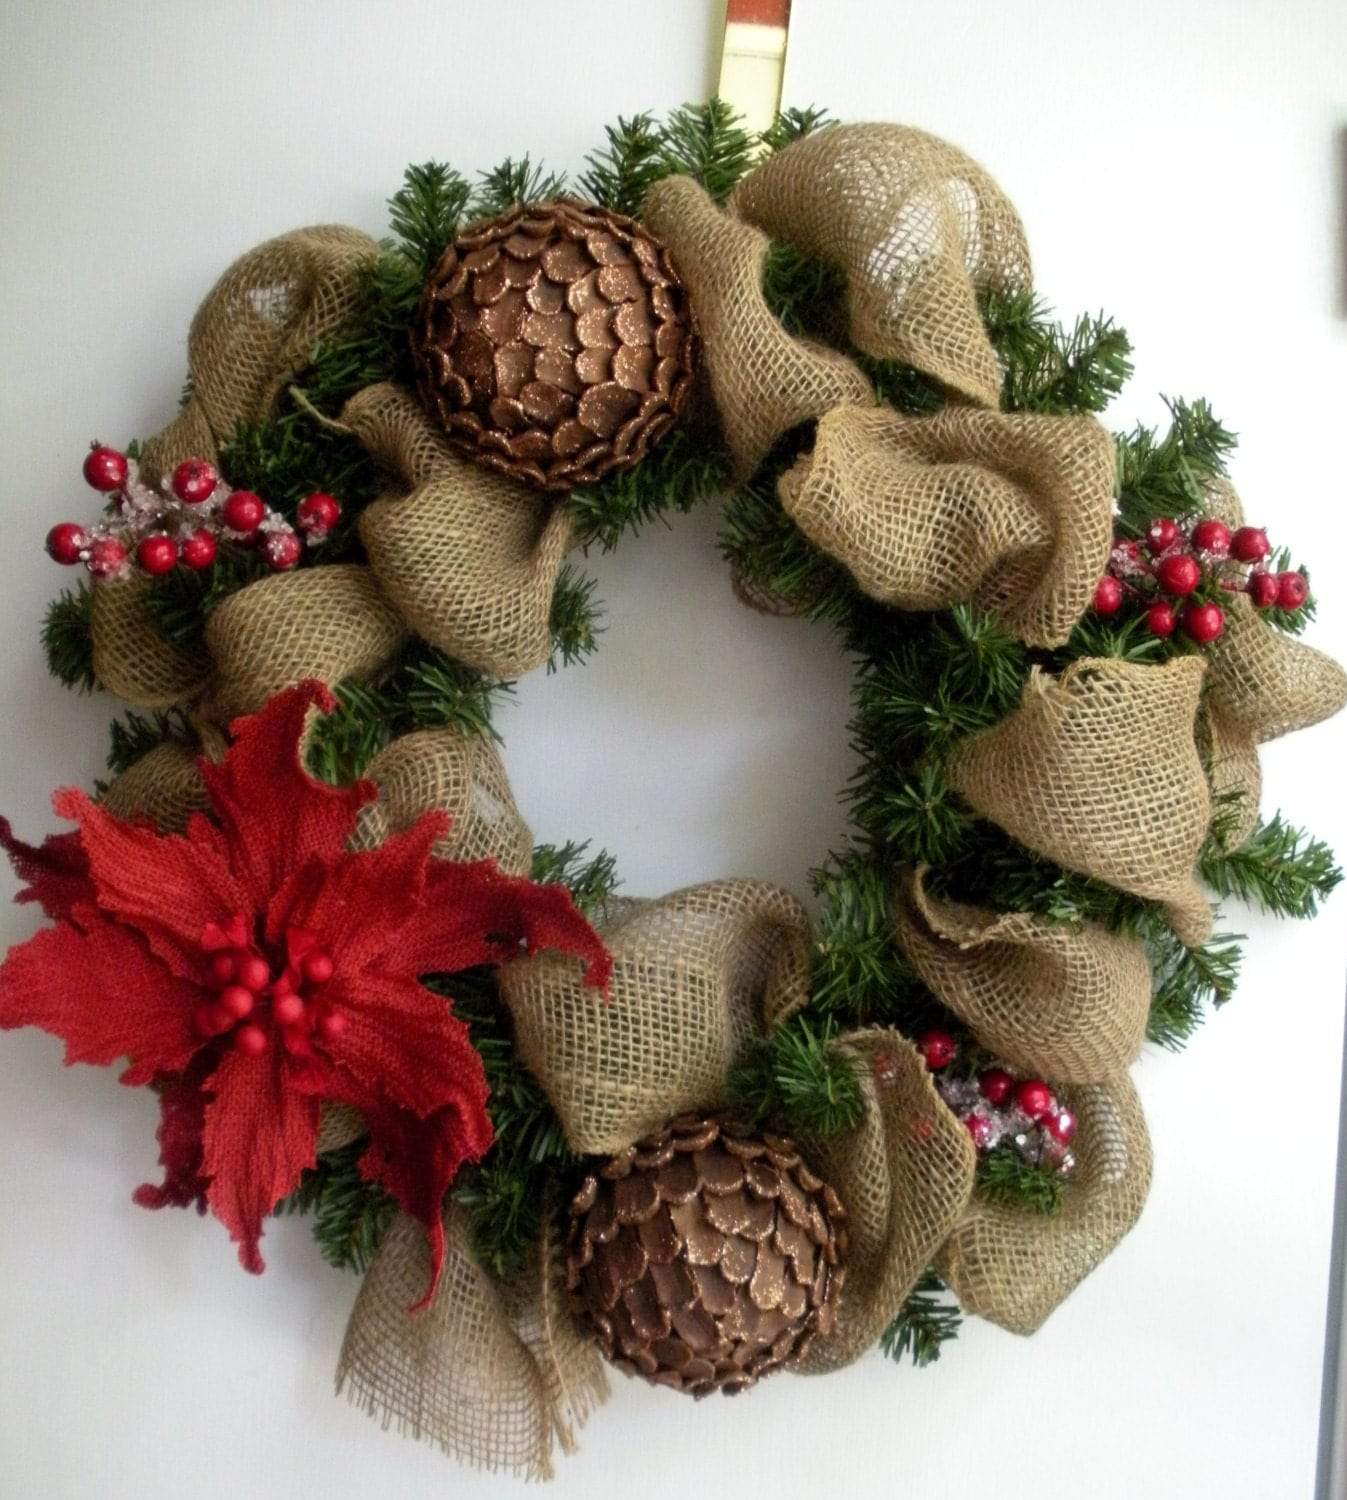 Burlap Christmas Woodlands Wreath With Pinecones Poinsettia